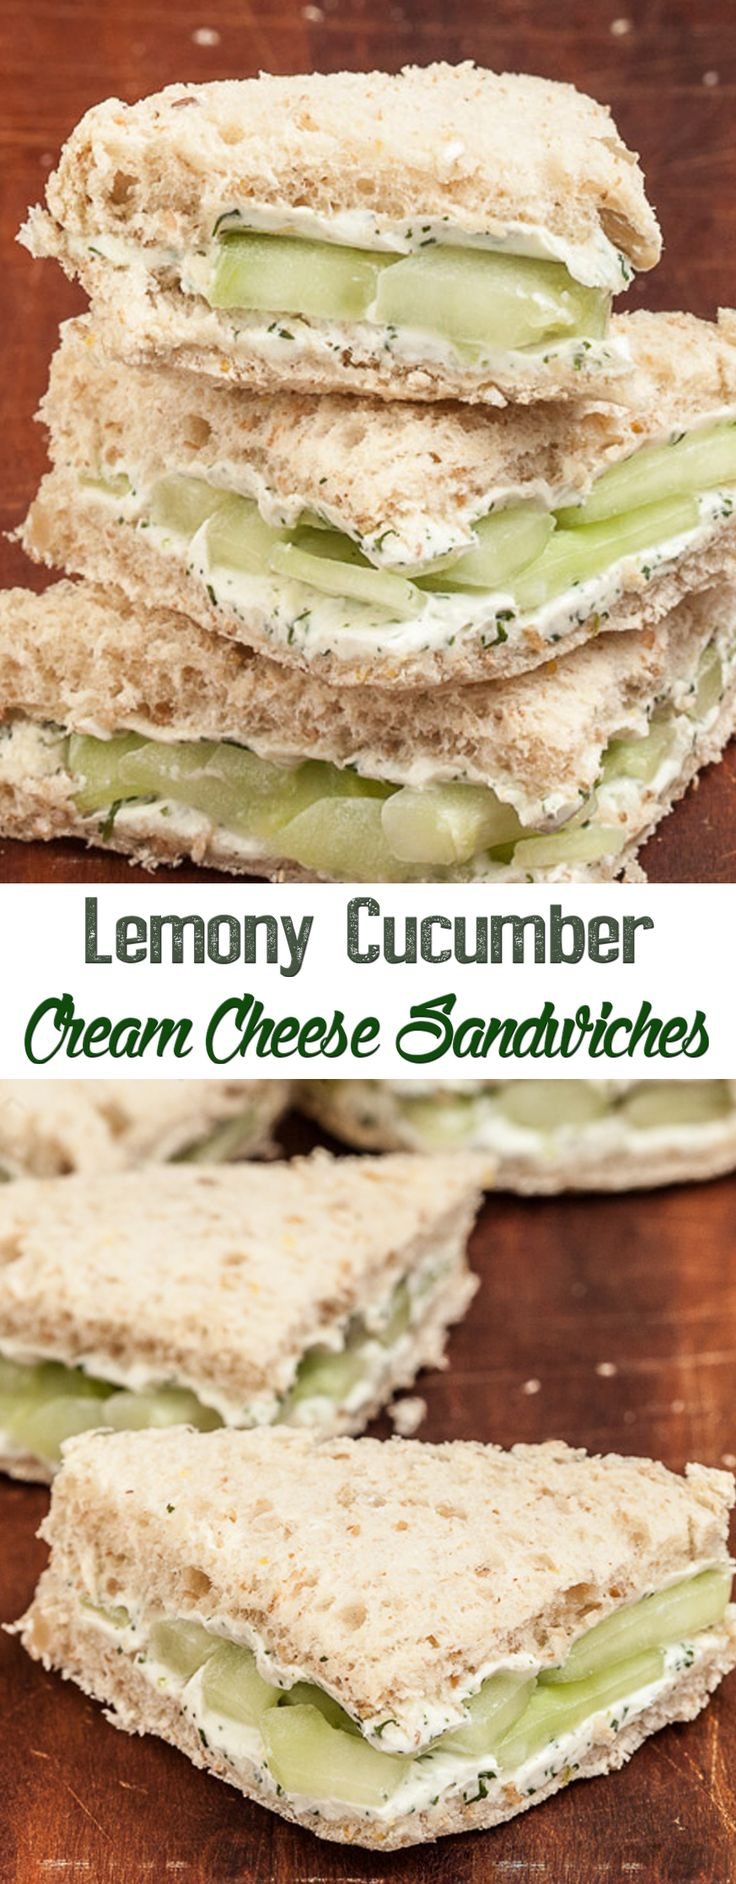 Lemony Cucumber Cream Cheese Sandwiches. I can't wait to make this with my fresh grown cucumbers.